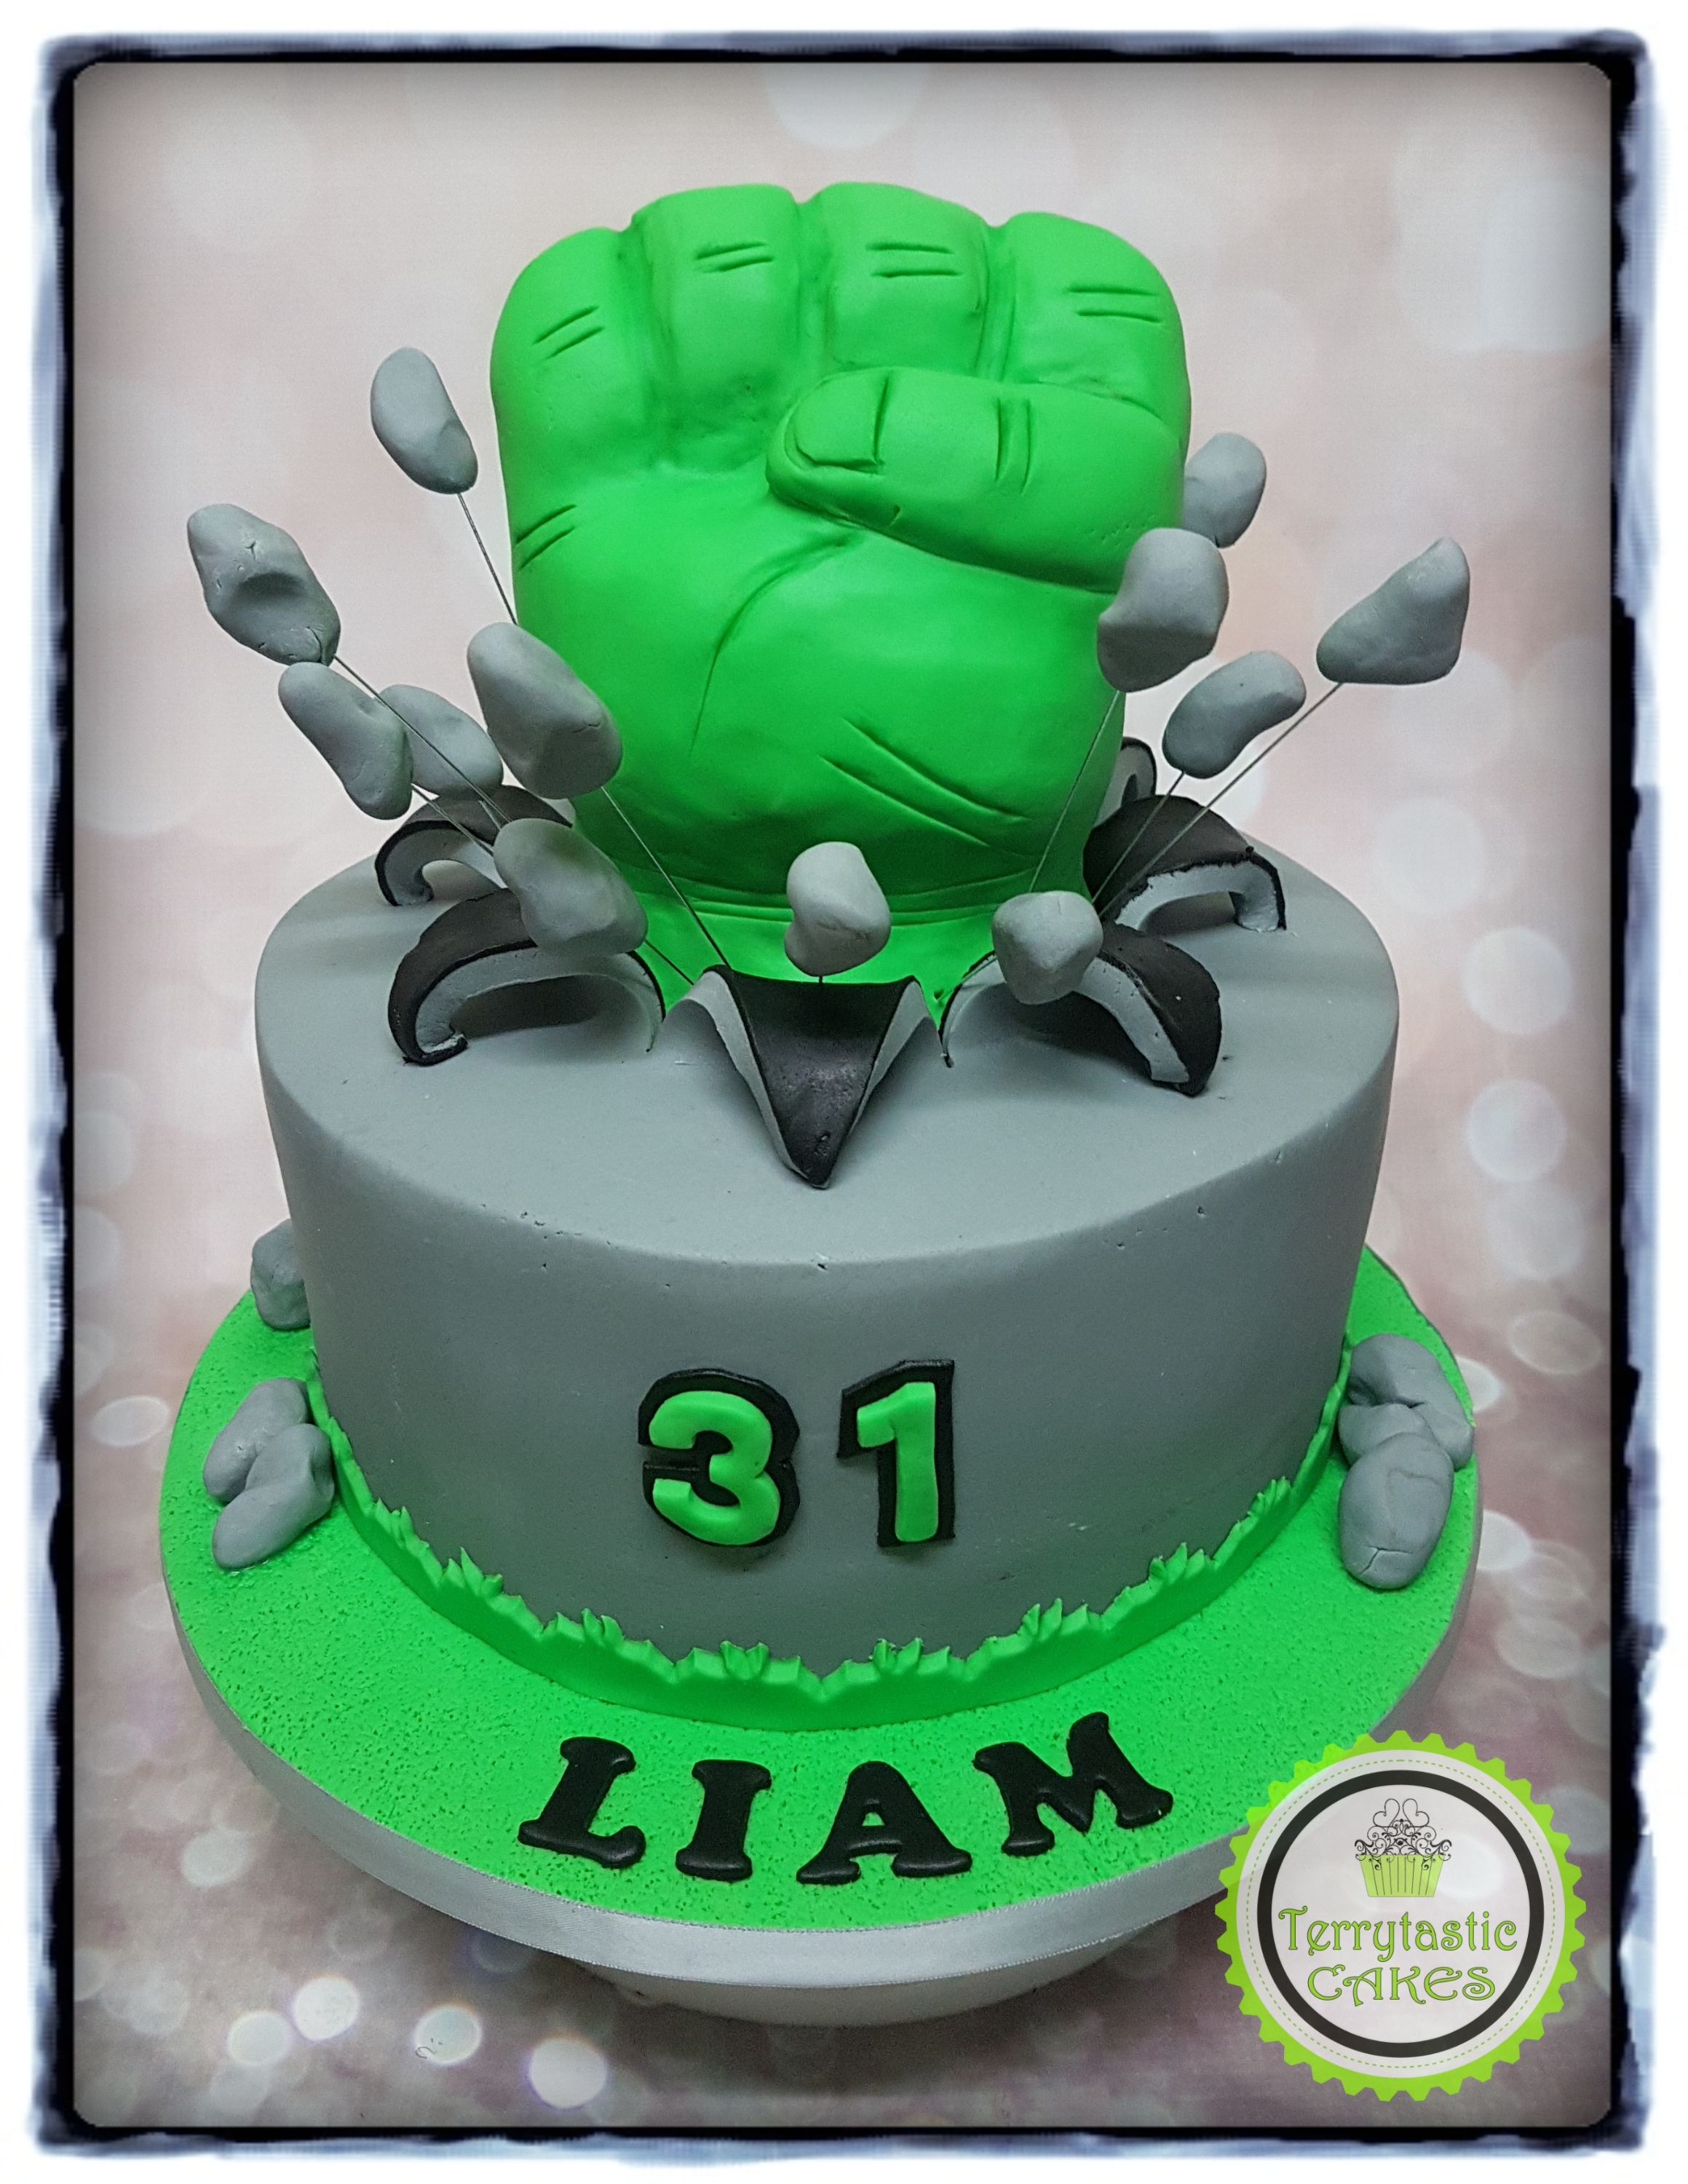 Swell Marvel Avengers Hulk Fist Cake Terrytastic Cakes Funny Birthday Cards Online Alyptdamsfinfo